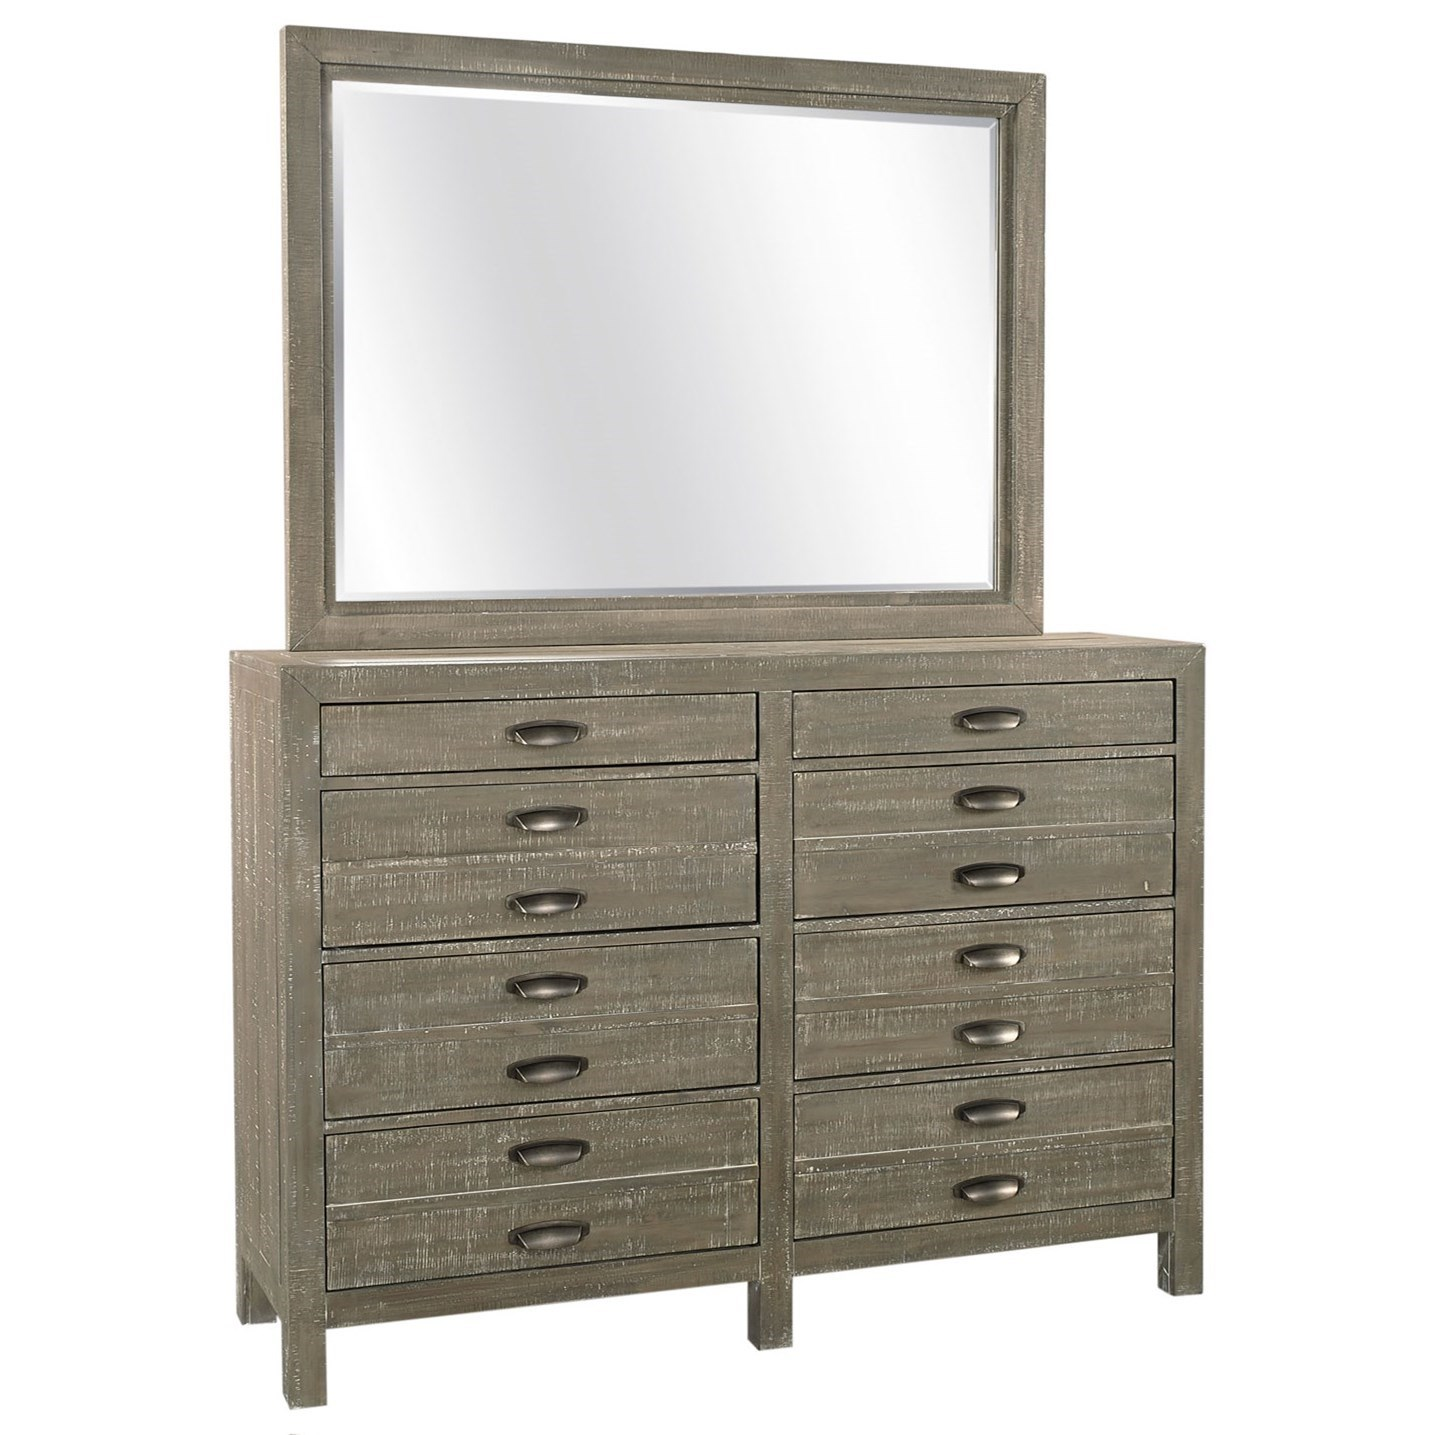 Radiata Chesser Mirror Combo by Aspenhome at Walker's Furniture